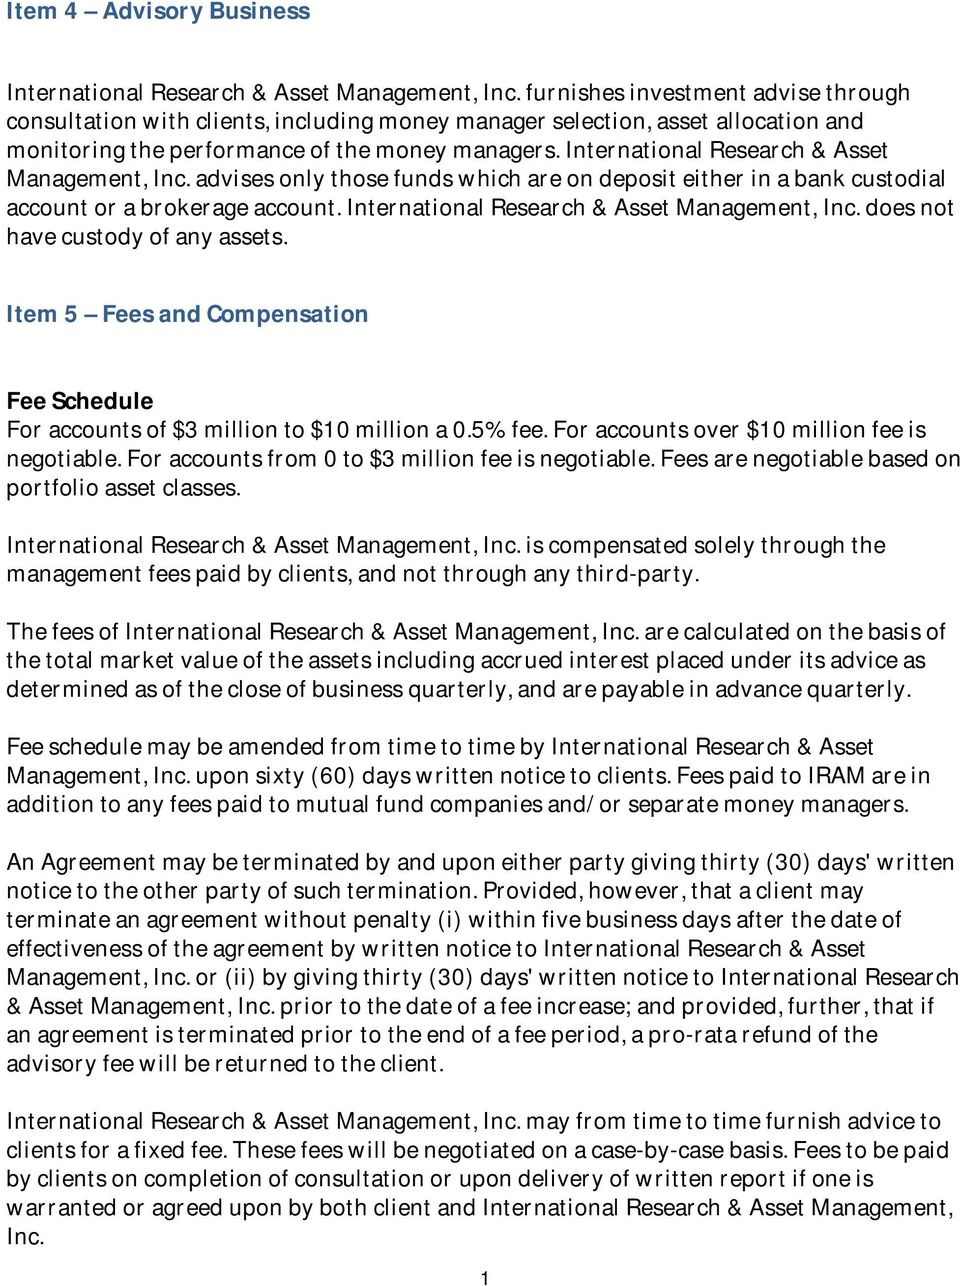 International Research & Asset Management, Inc. advises only those funds which are on deposit either in a bank custodial account or a brokerage account. International Research & Asset Management, Inc.